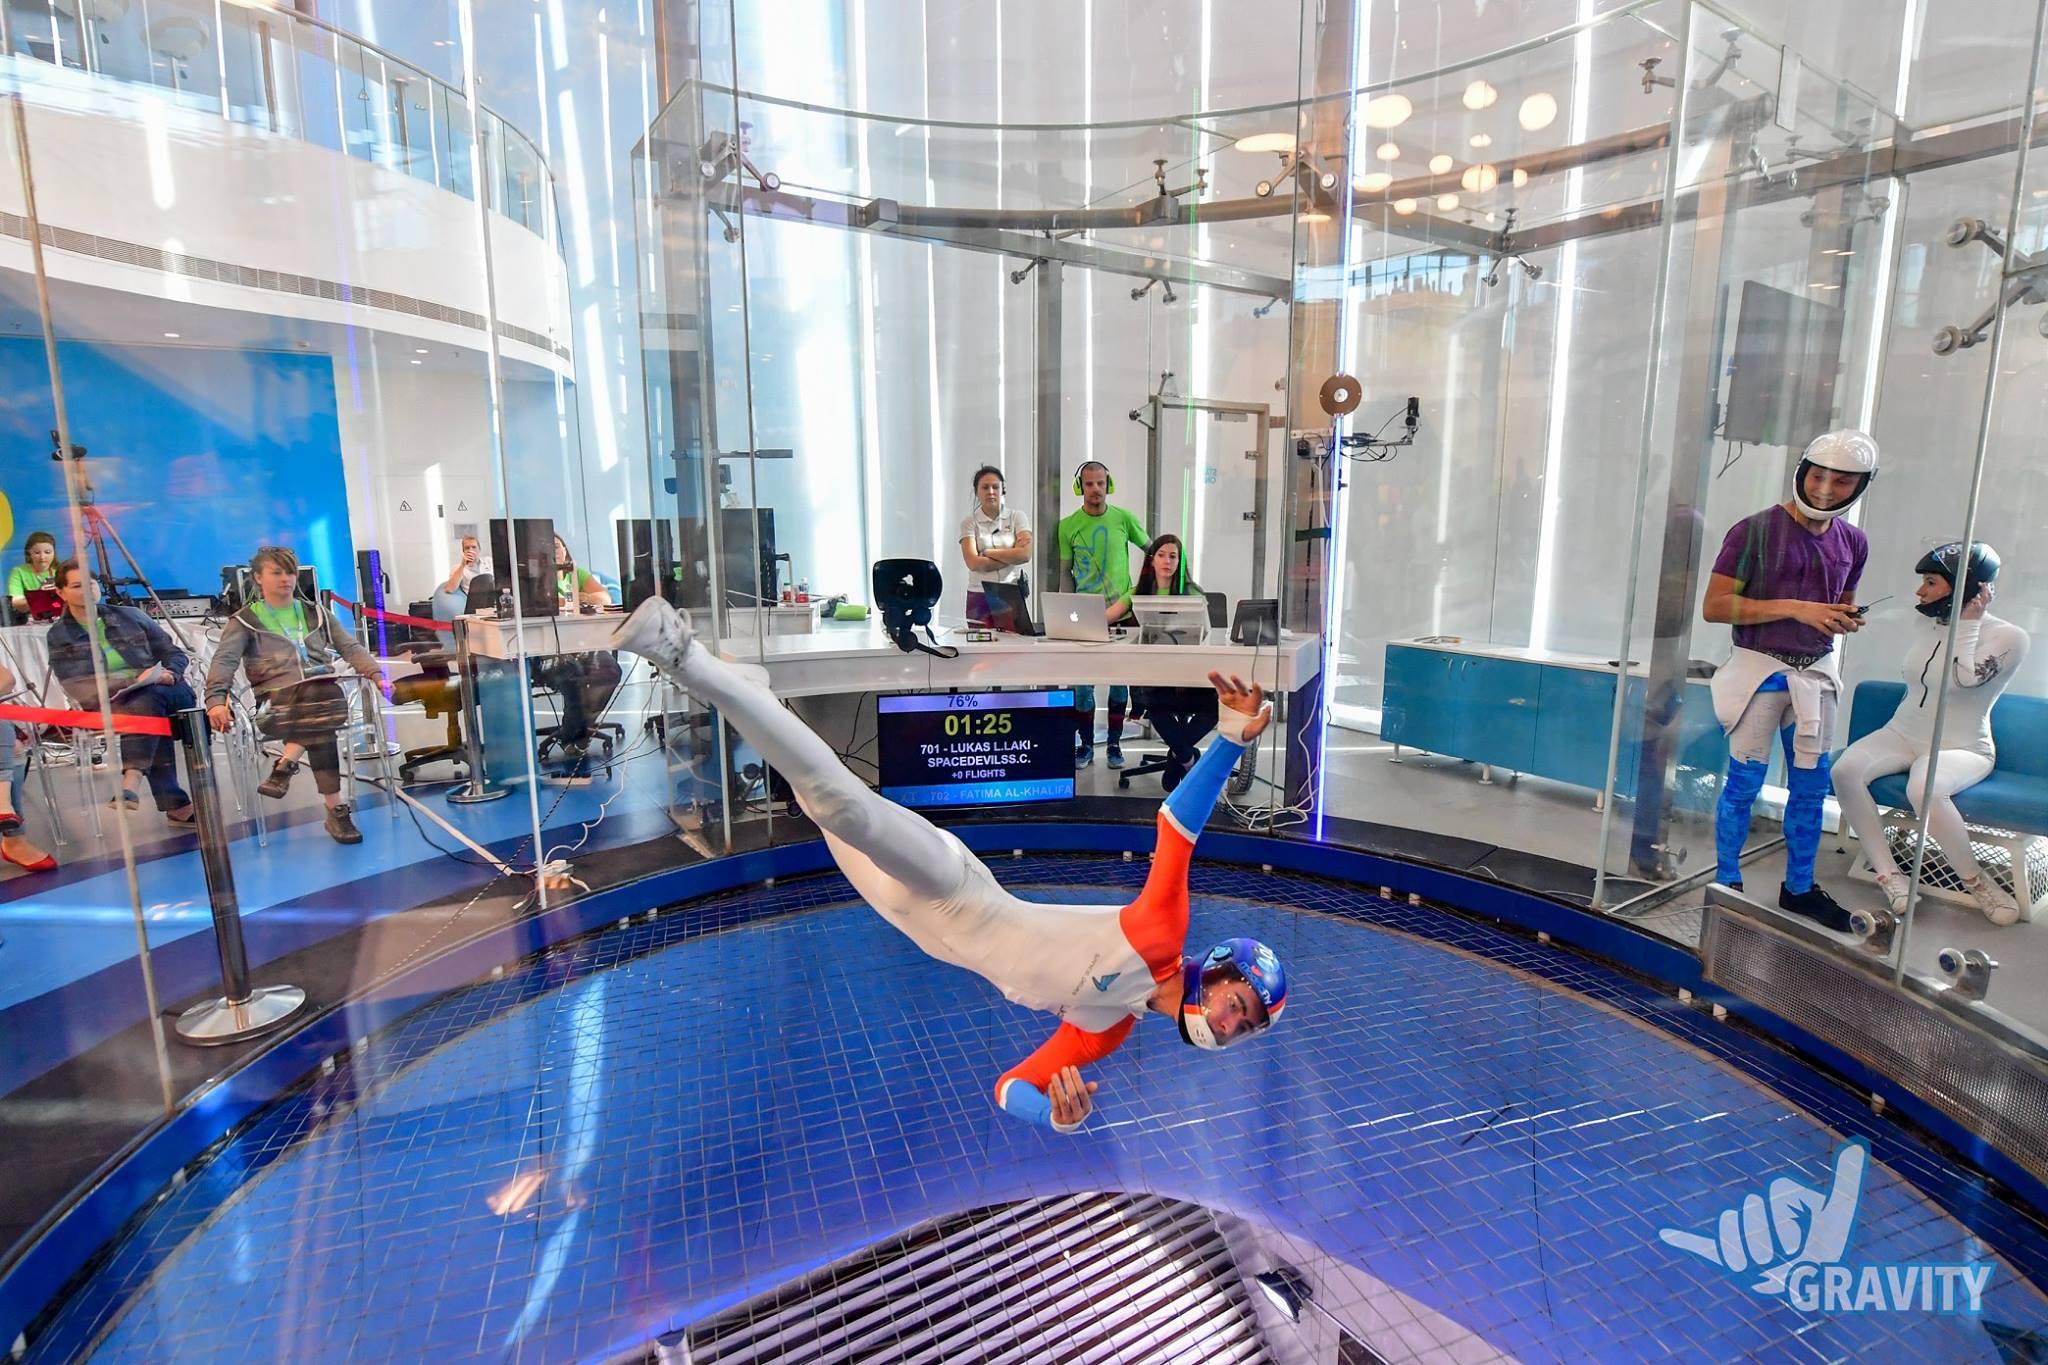 Gravity's large, clear wind tunnel is state of the art and perfect  for viewing